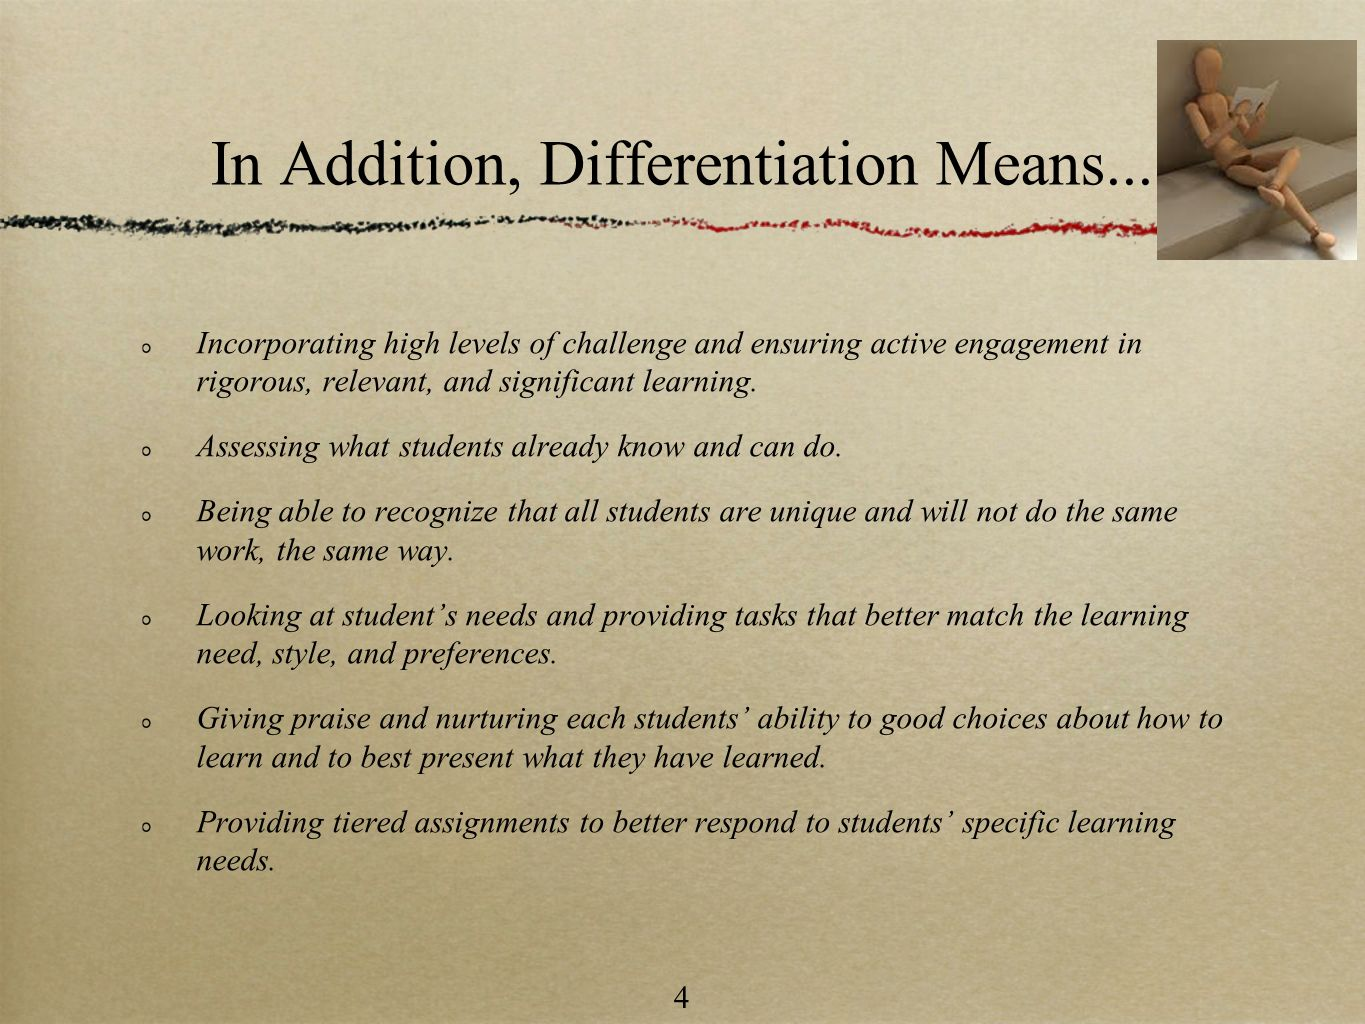 In Addition, Differentiation Means...